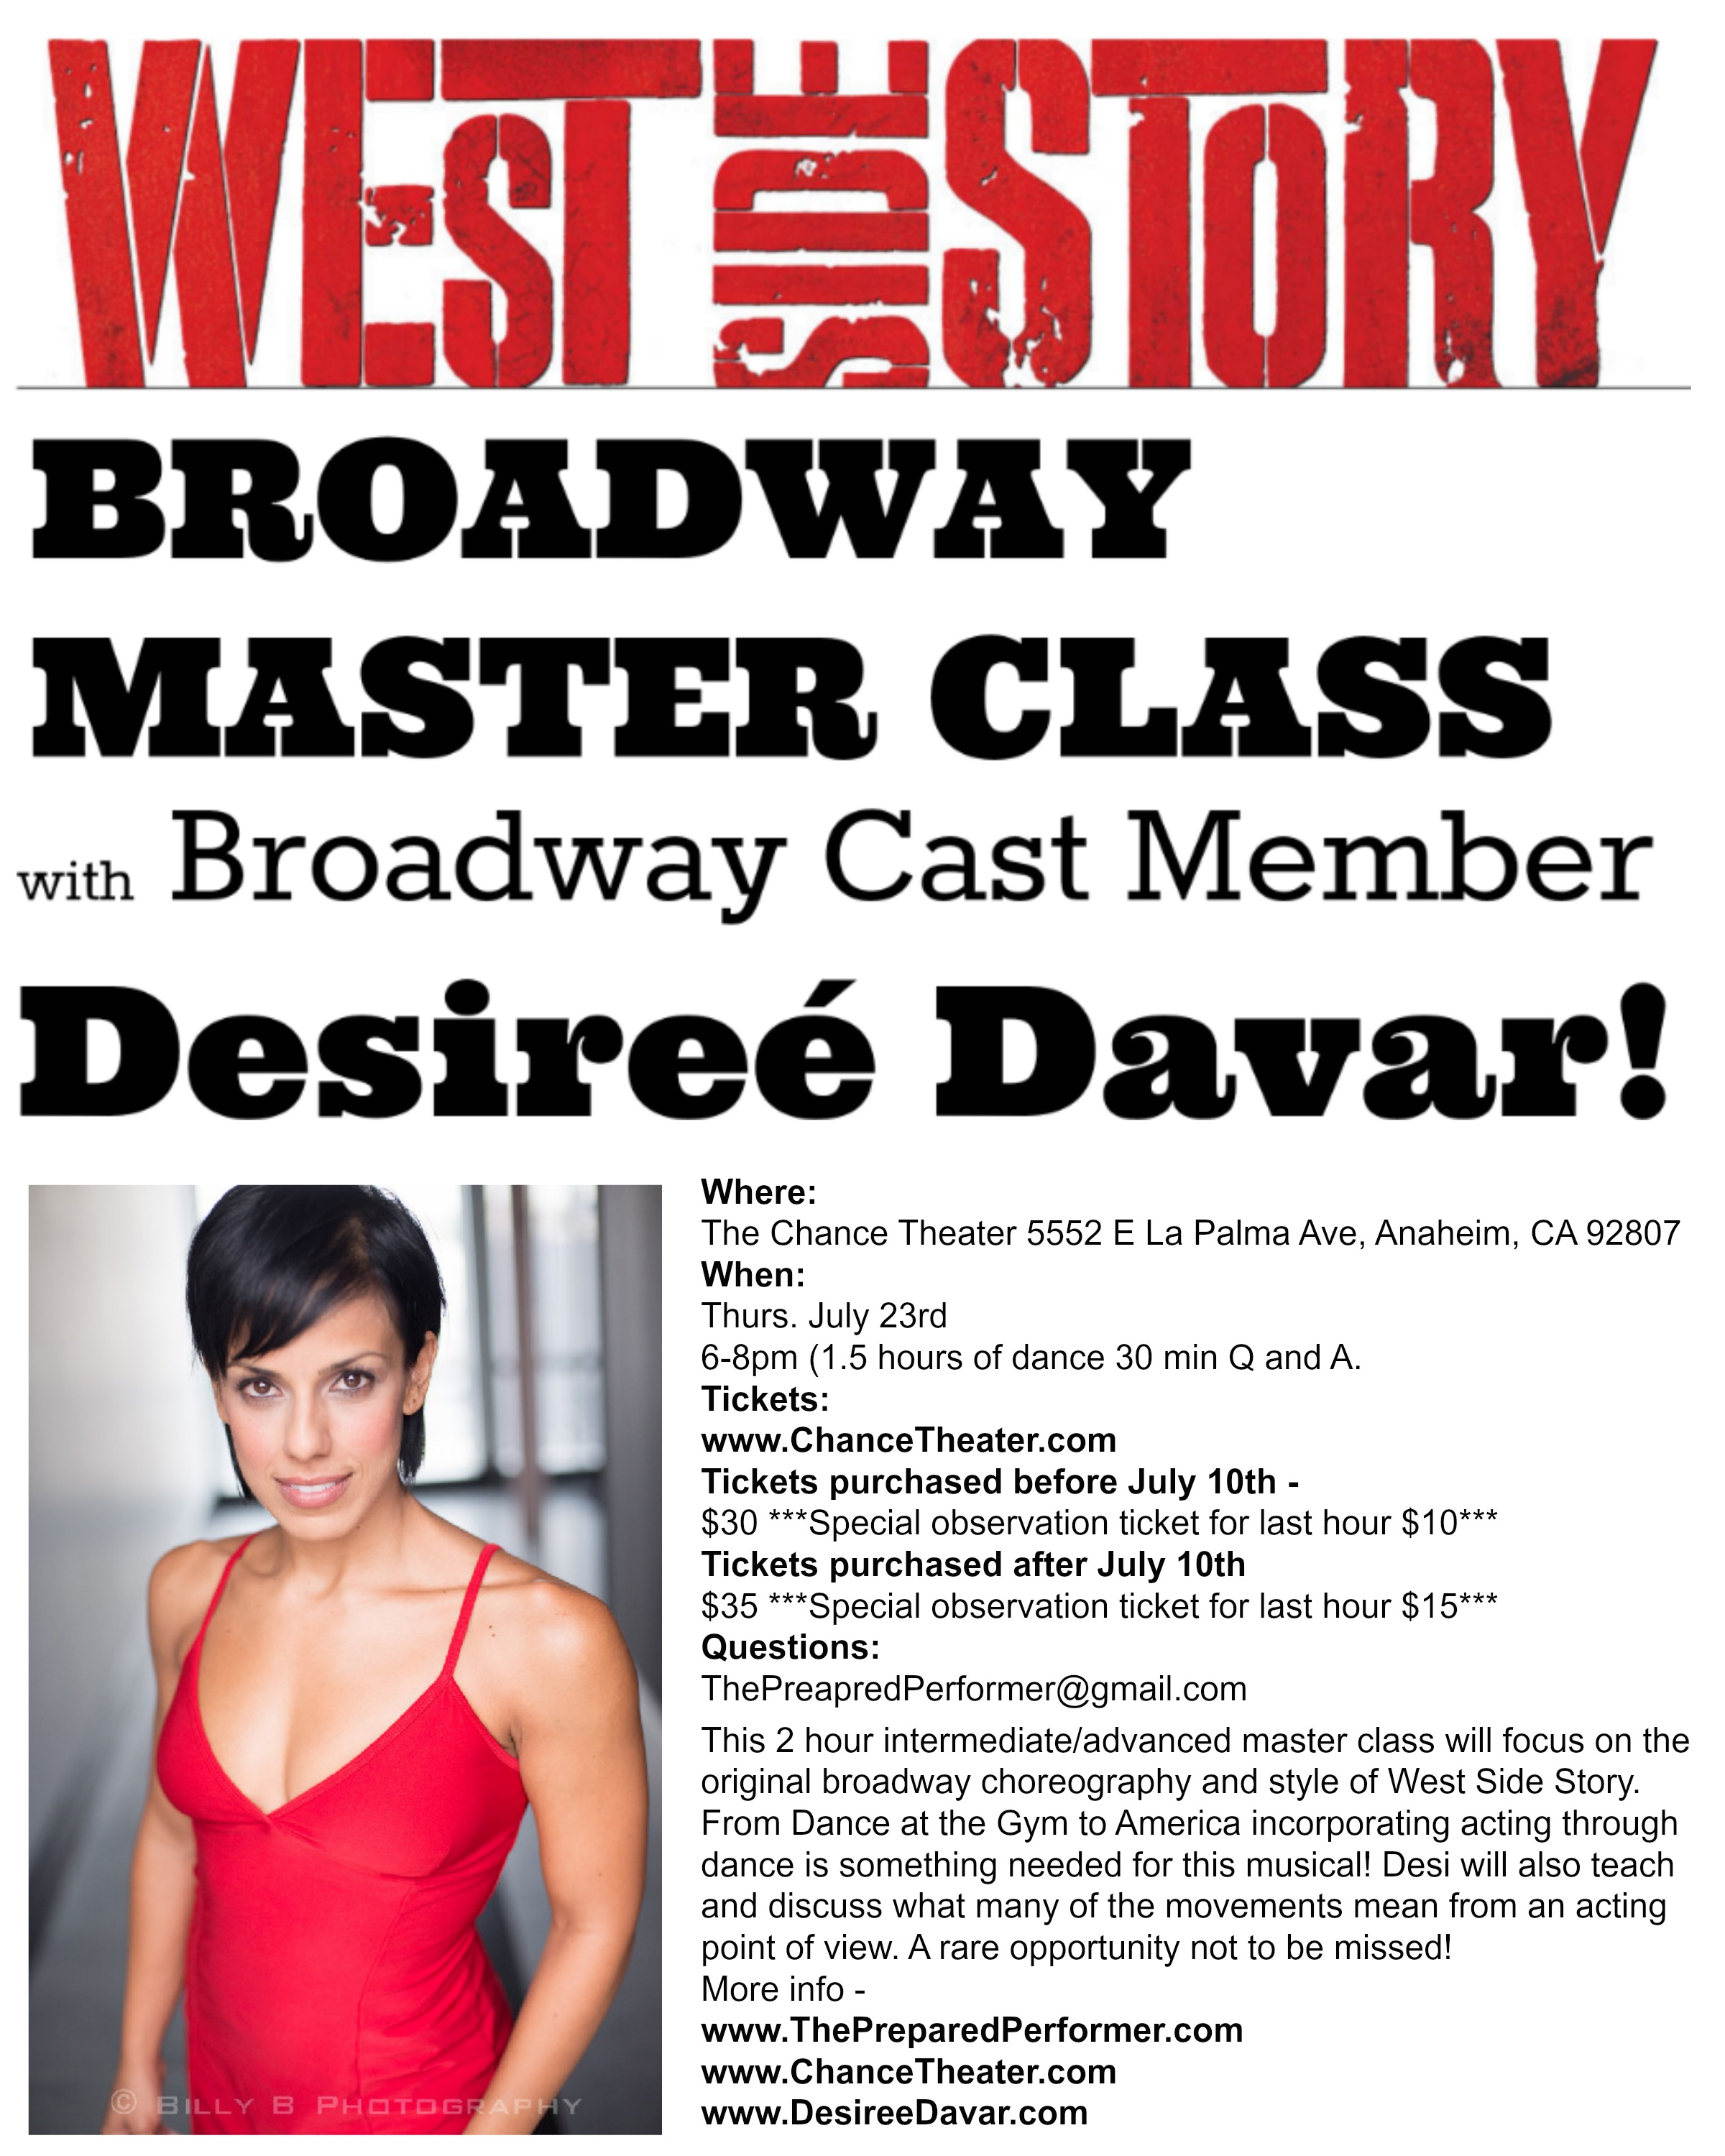 West Side Story Broadway Master Class